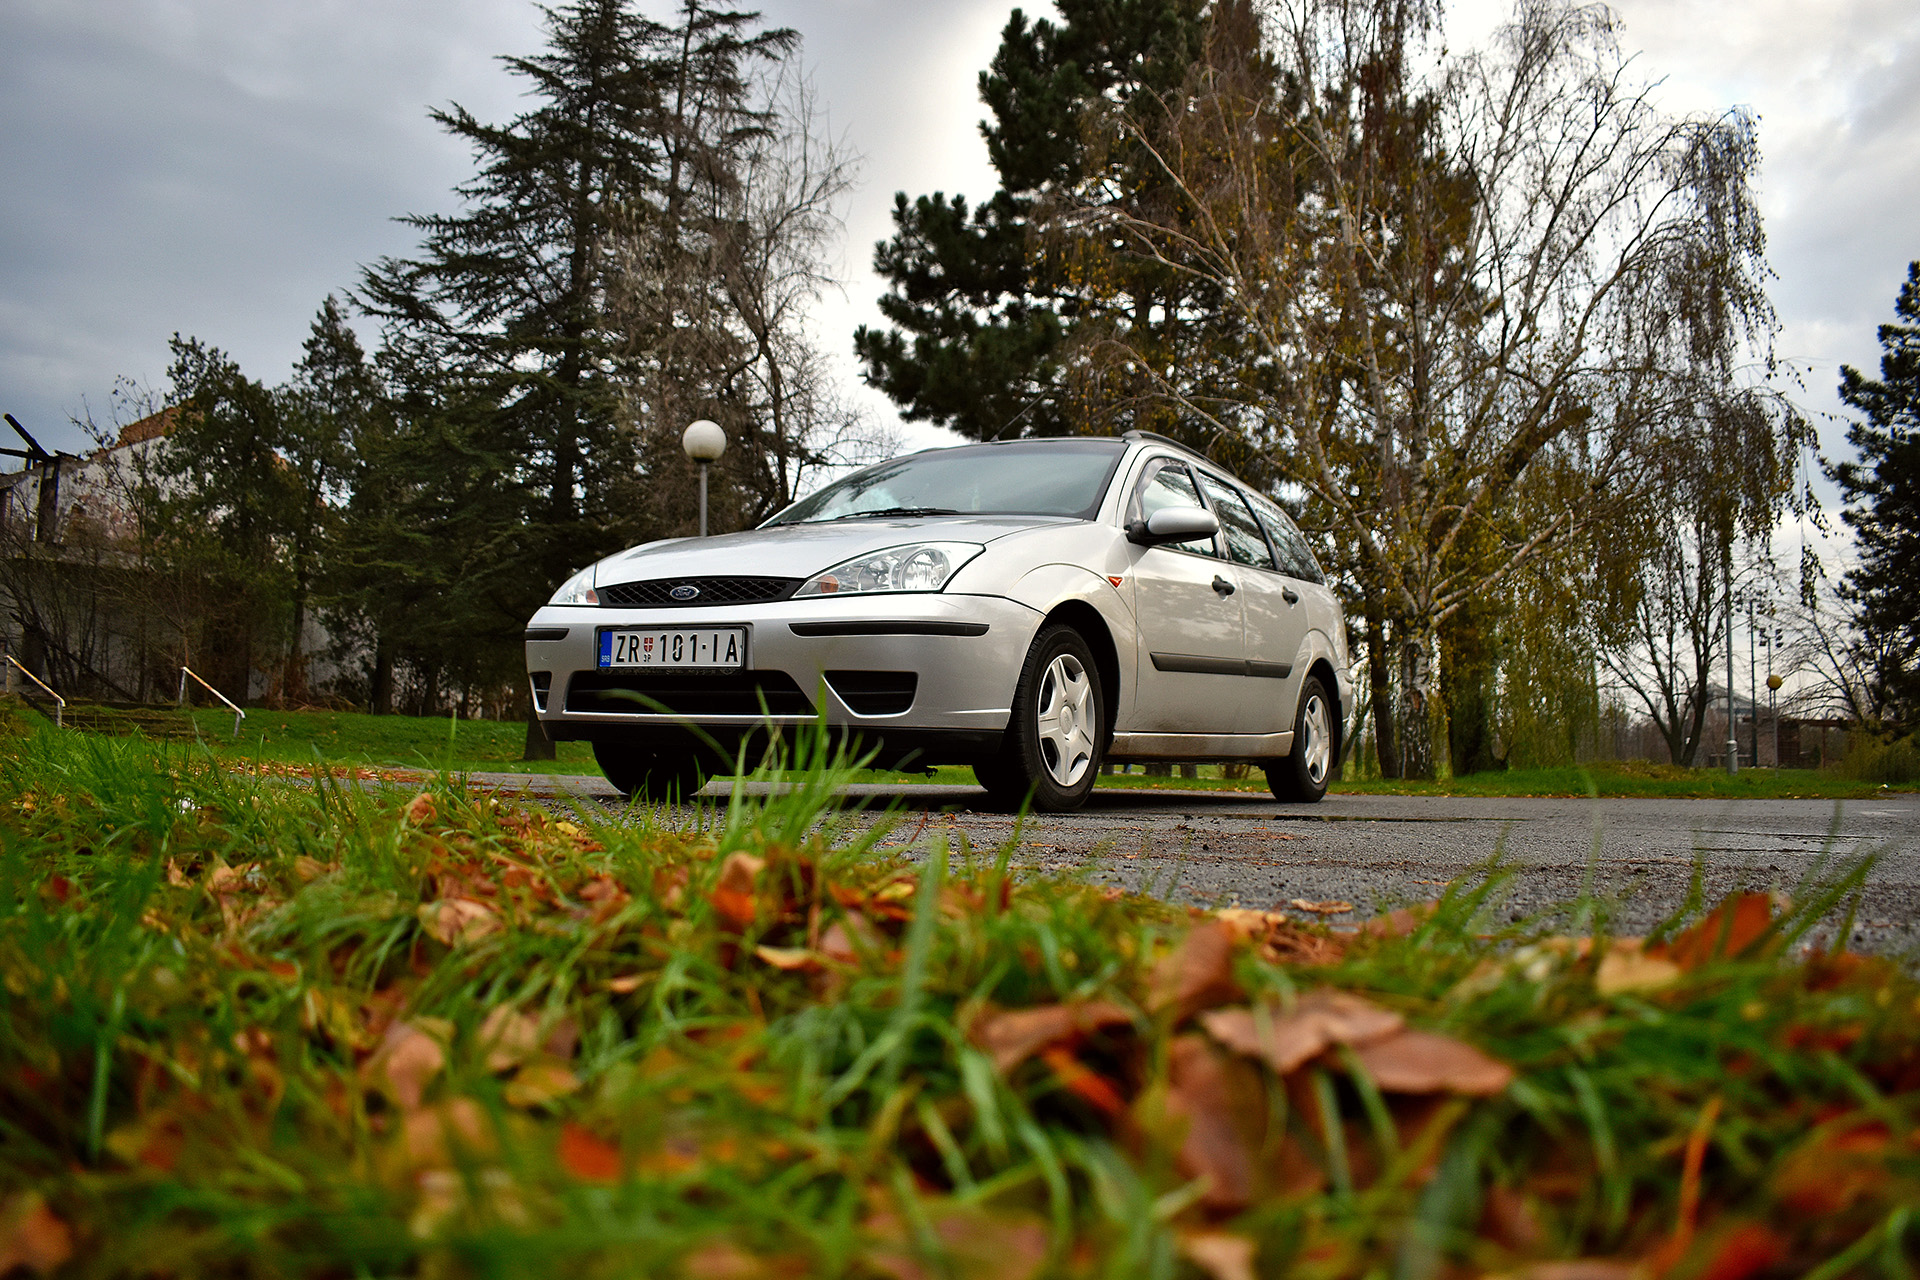 TEST: Ford Focus Mk1 1.8 TDDI